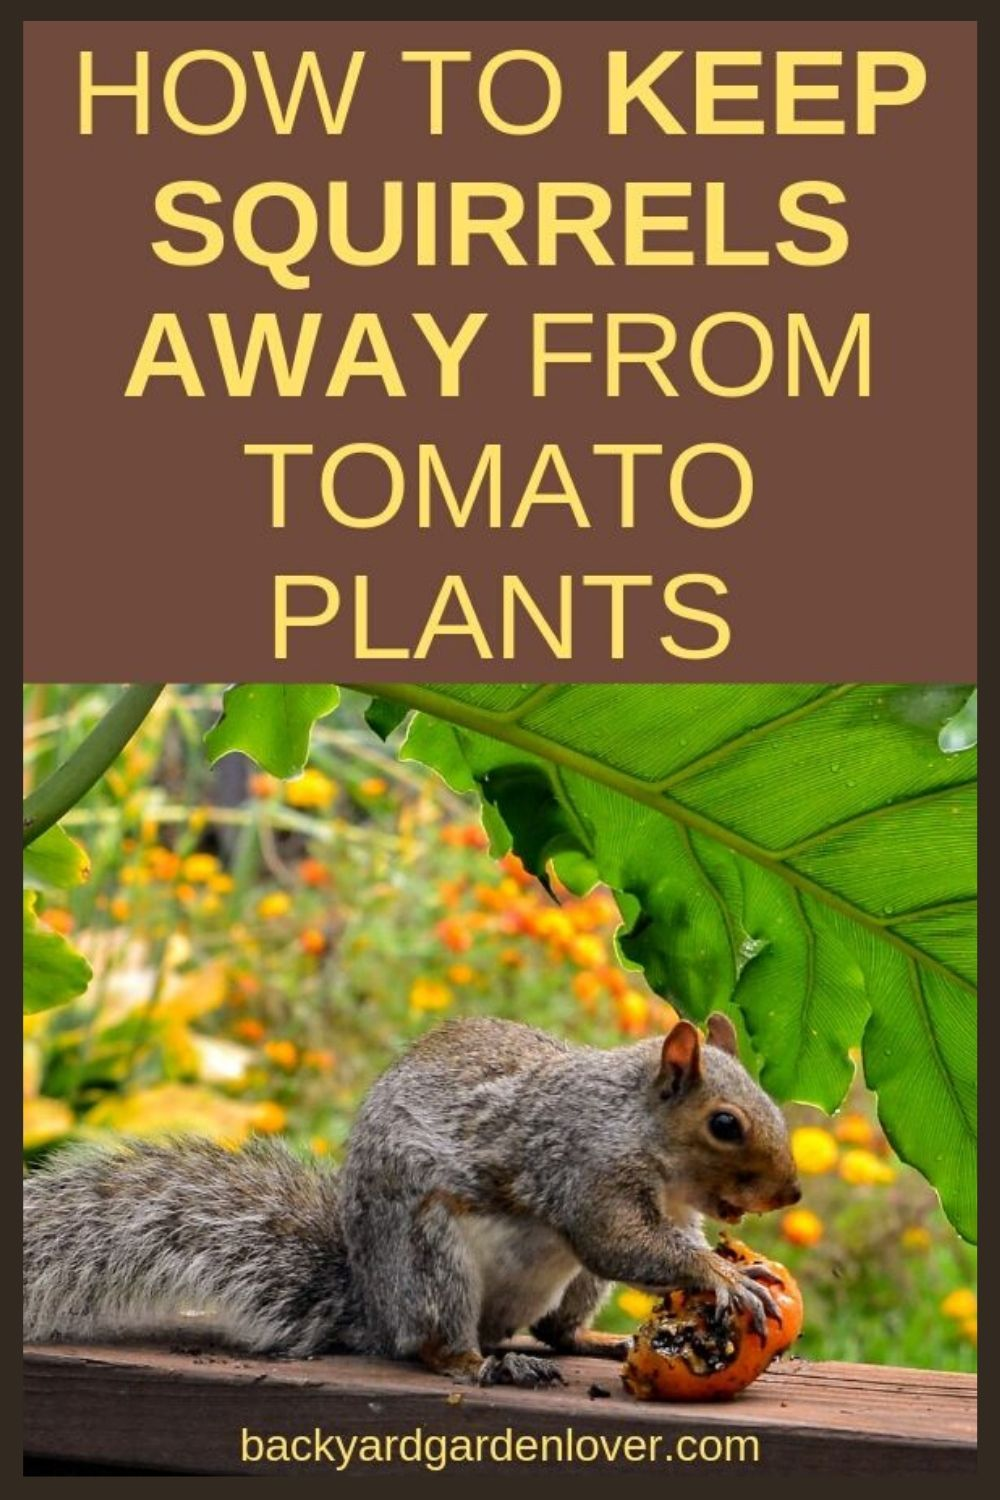 How To Keep Squirrels Away From Tomato Plants